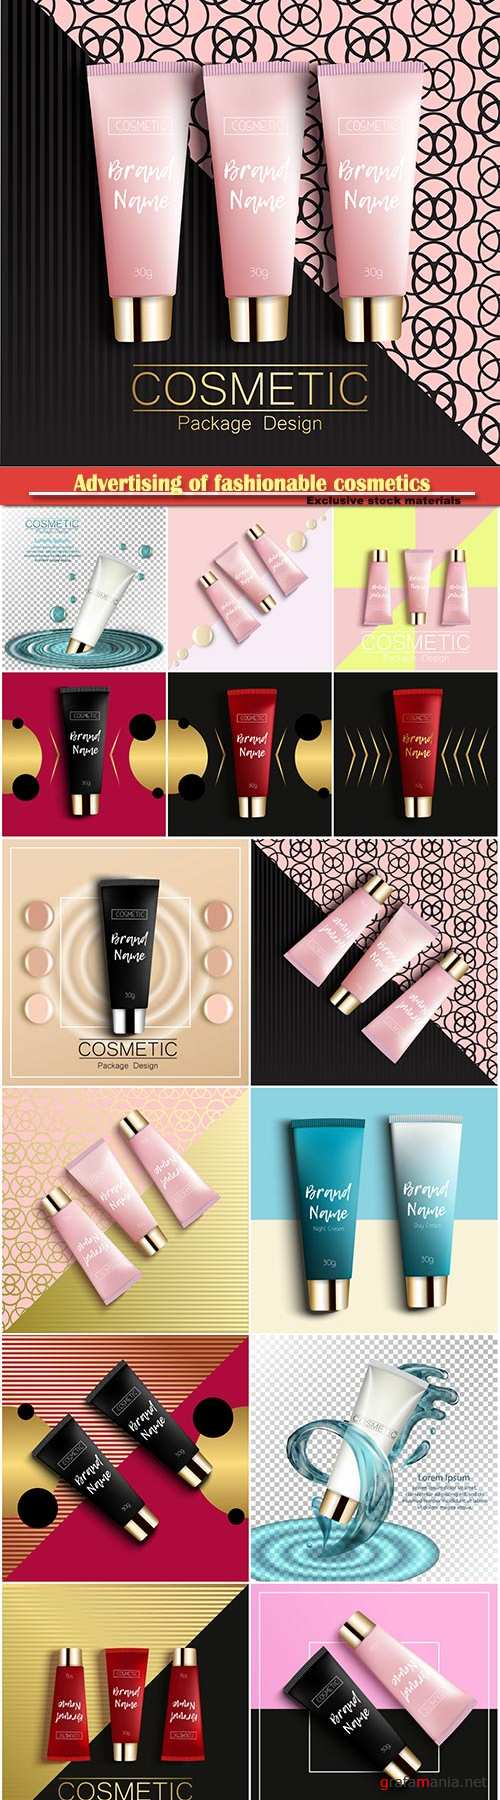 Advertising of fashionable cosmetics, realistic 3D template design cosmetics packaging